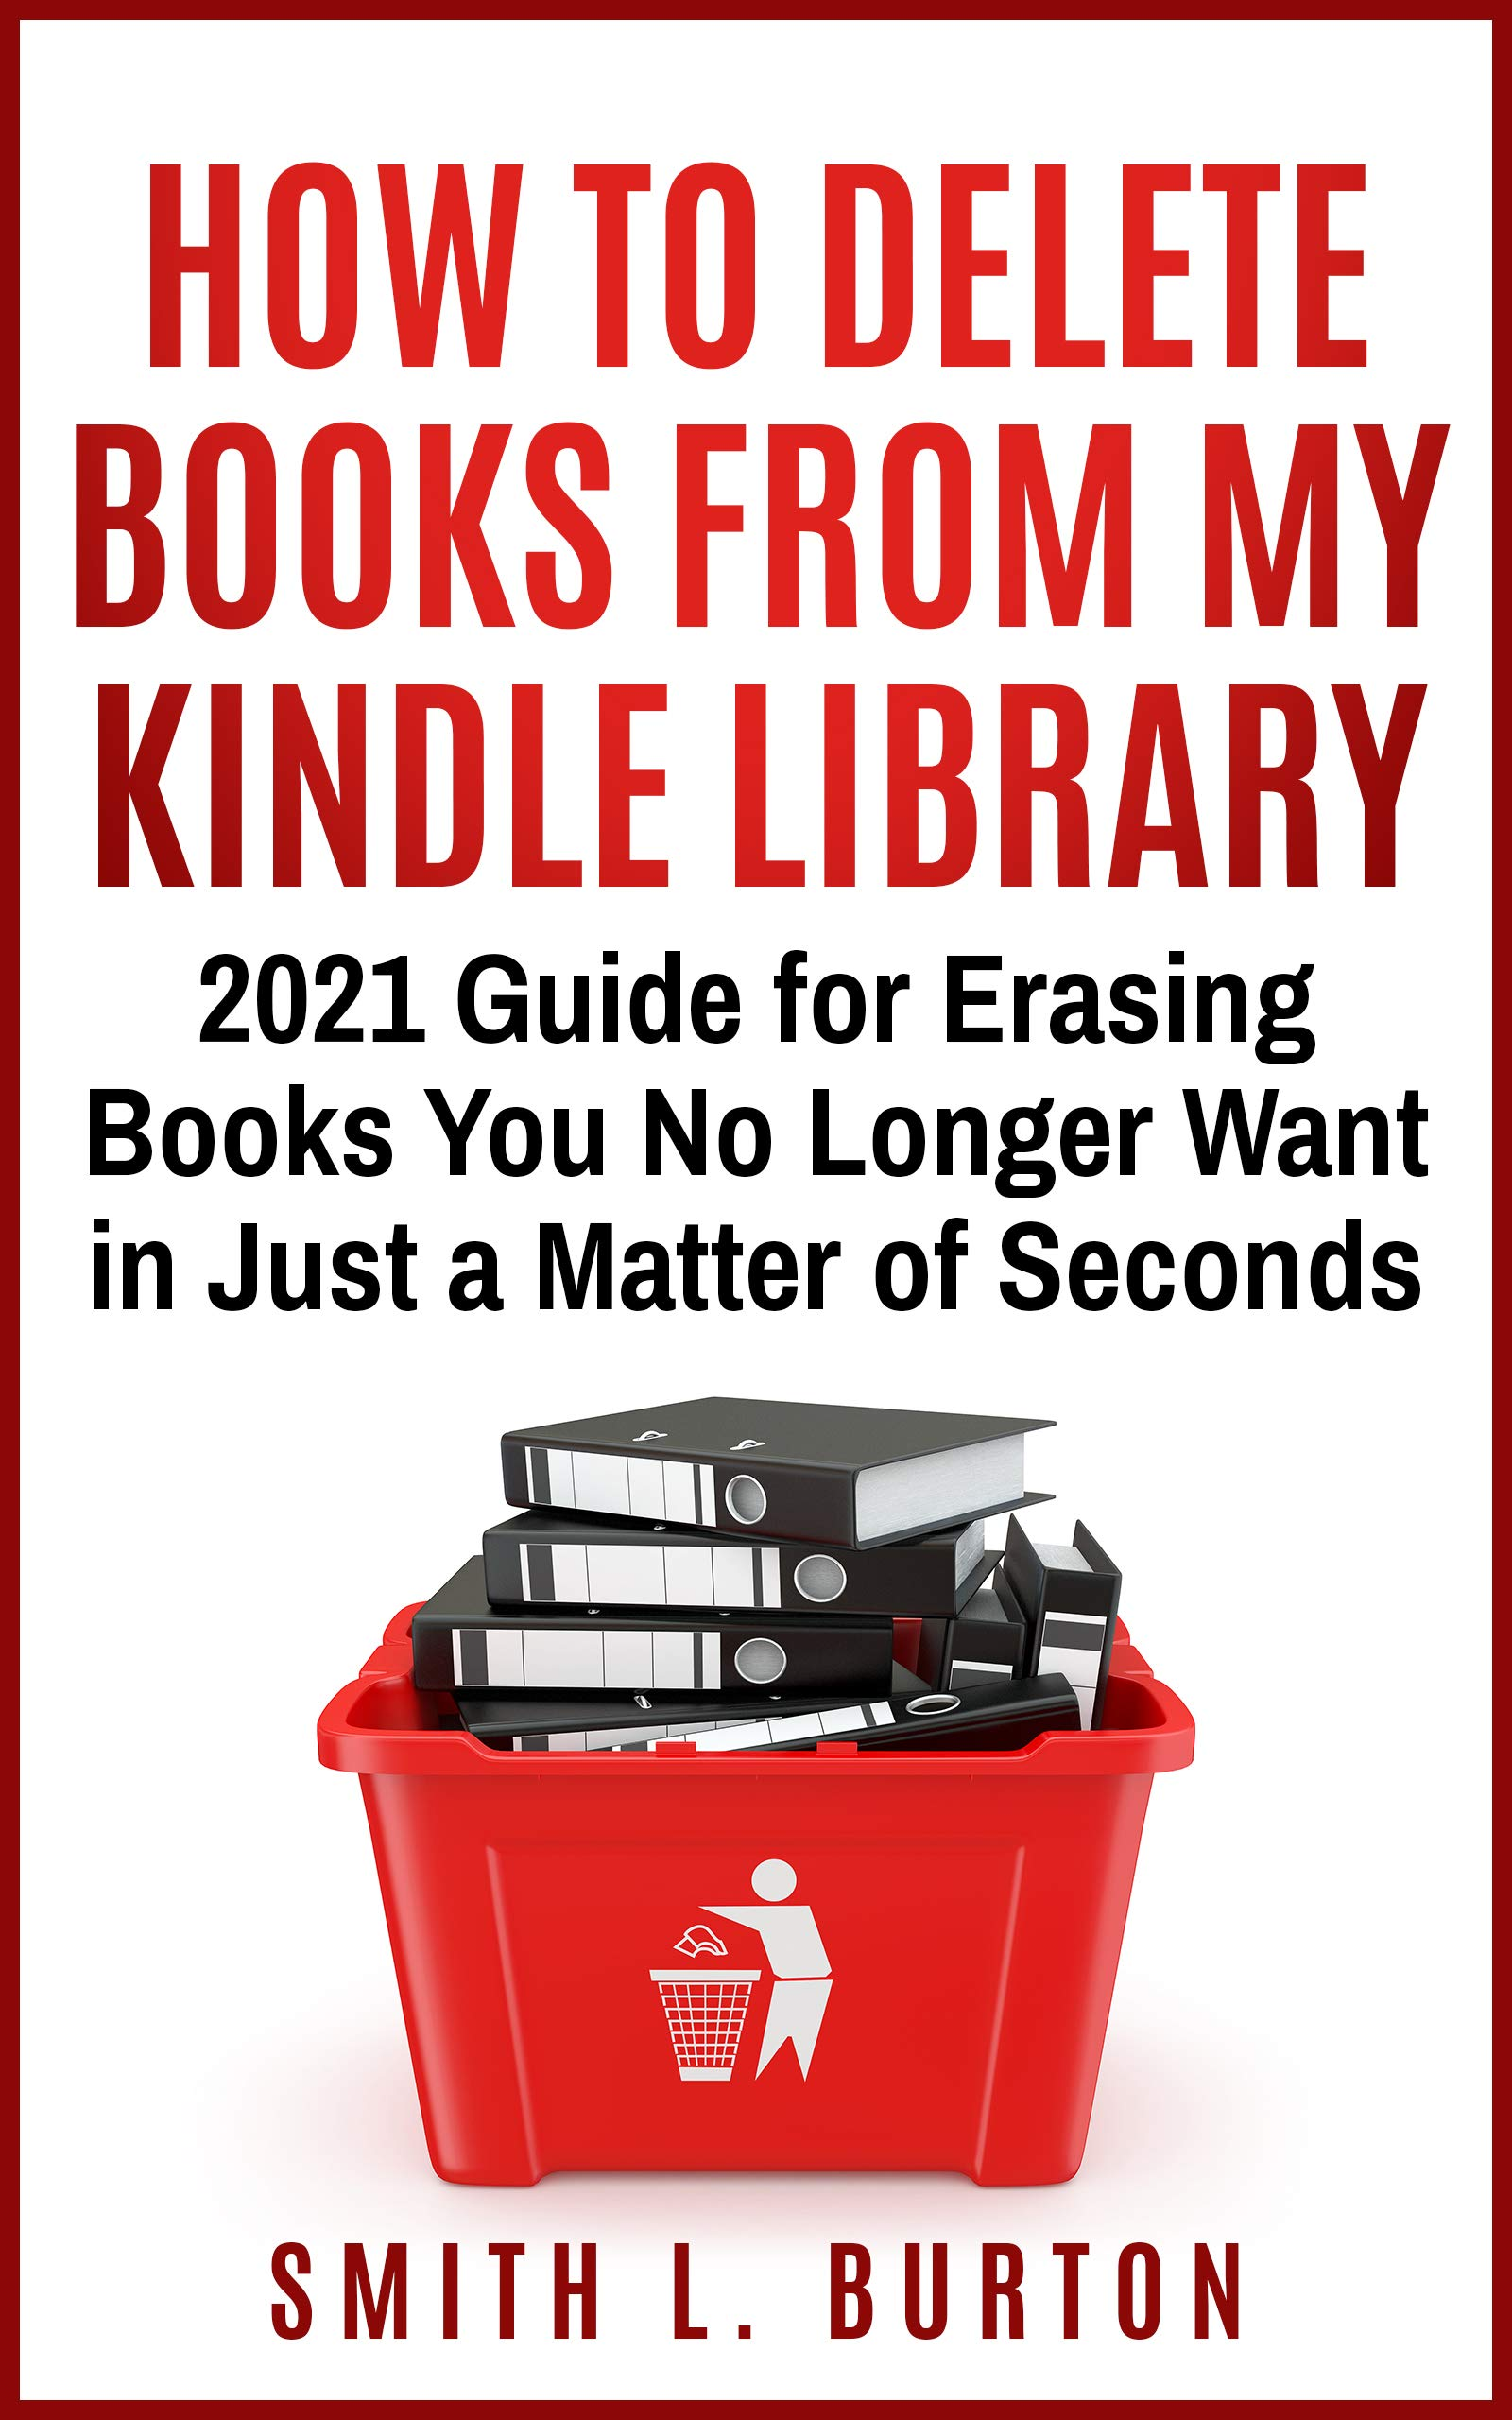 How To Delete Books From My Kindle Library: 2020 Guide For Erasing Books You No Longer Want In Just A Matter Of Seconds (E...